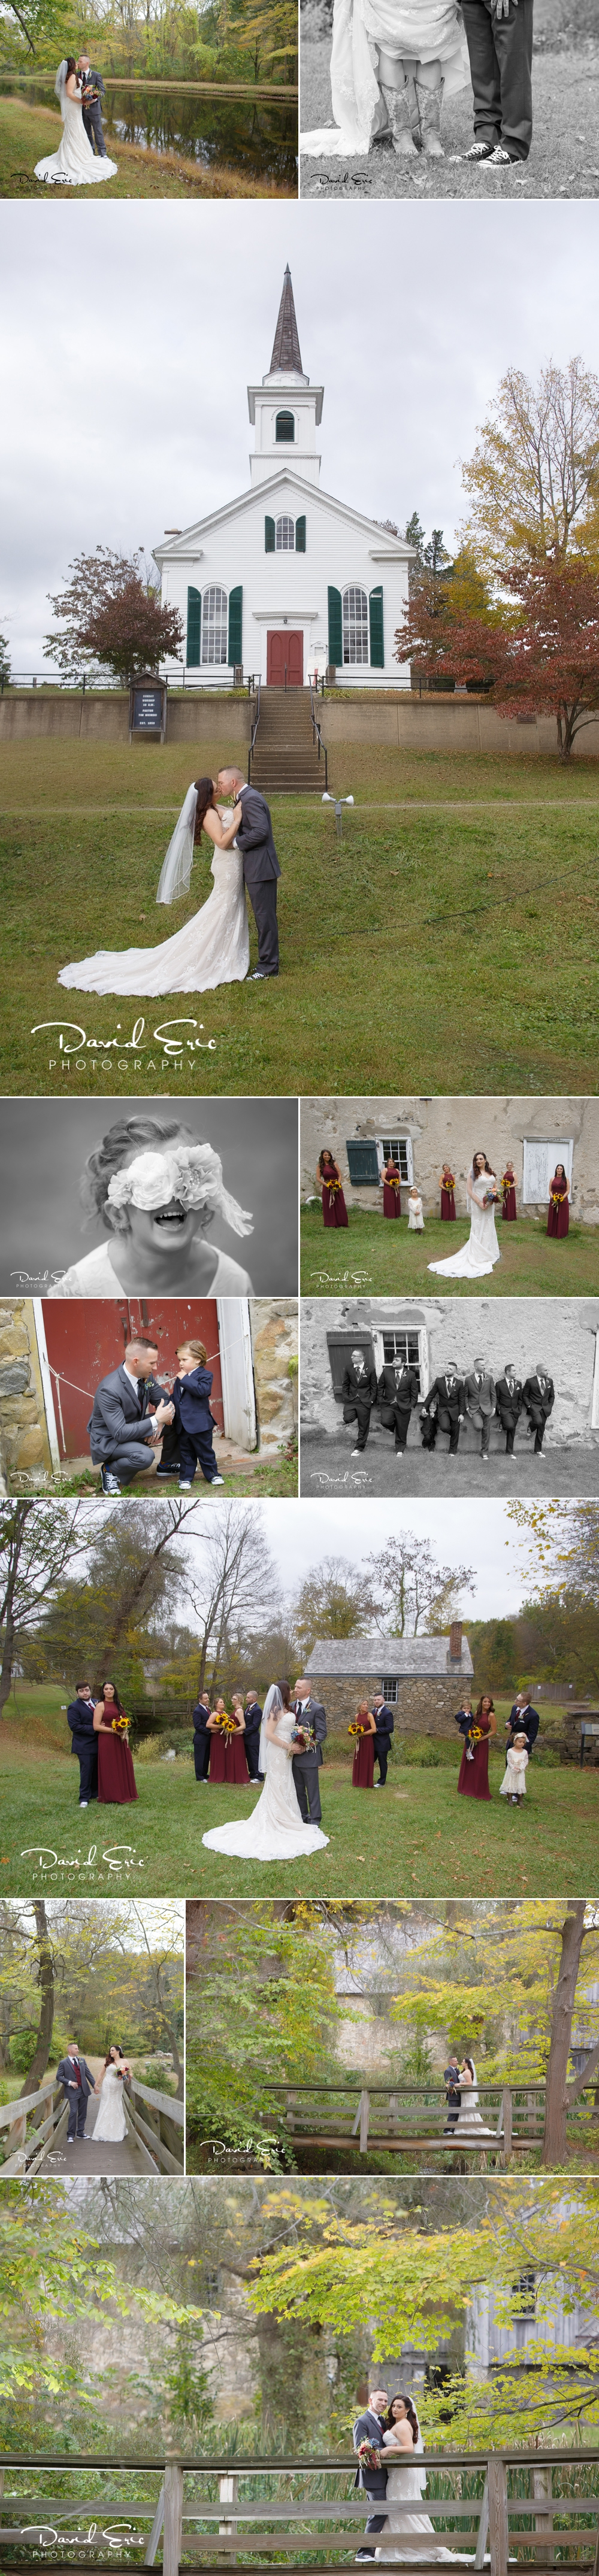 Capturing great shots of the Bride and Groom with their bridal party is a very important part of the day. But even more important of course is getting those incredible shots of just the two. These were taken at Waterloo Village in Stanhope, NJ.